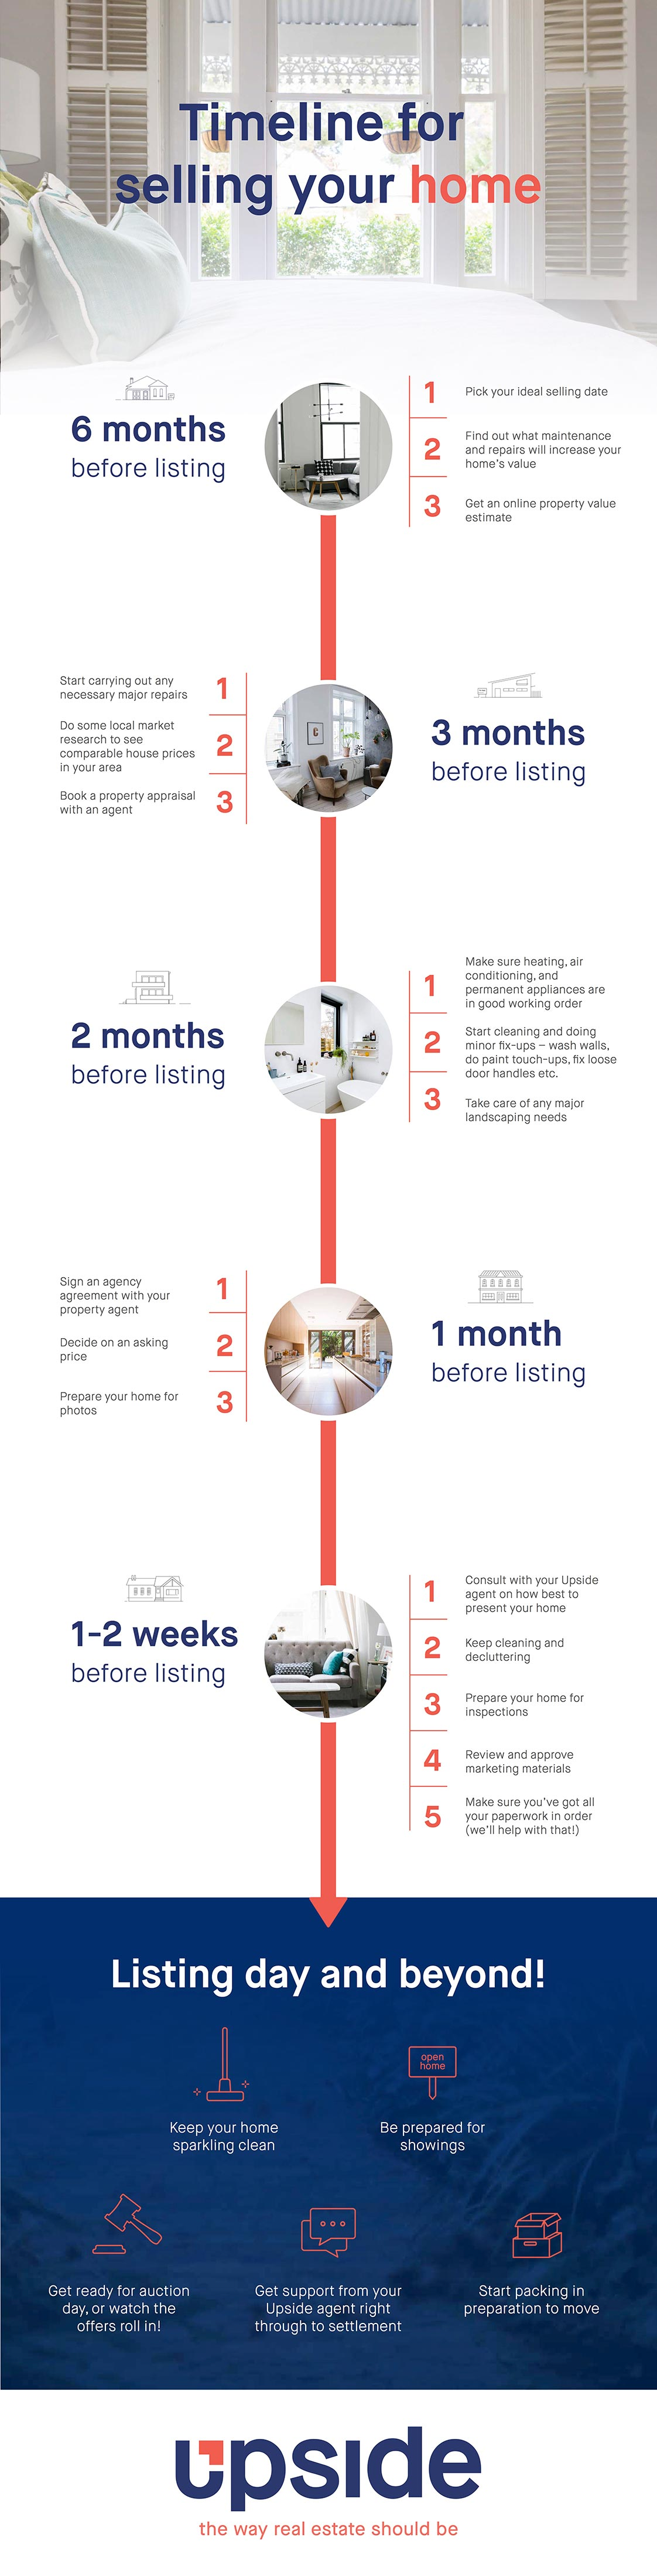 infographic timeline for selling your home